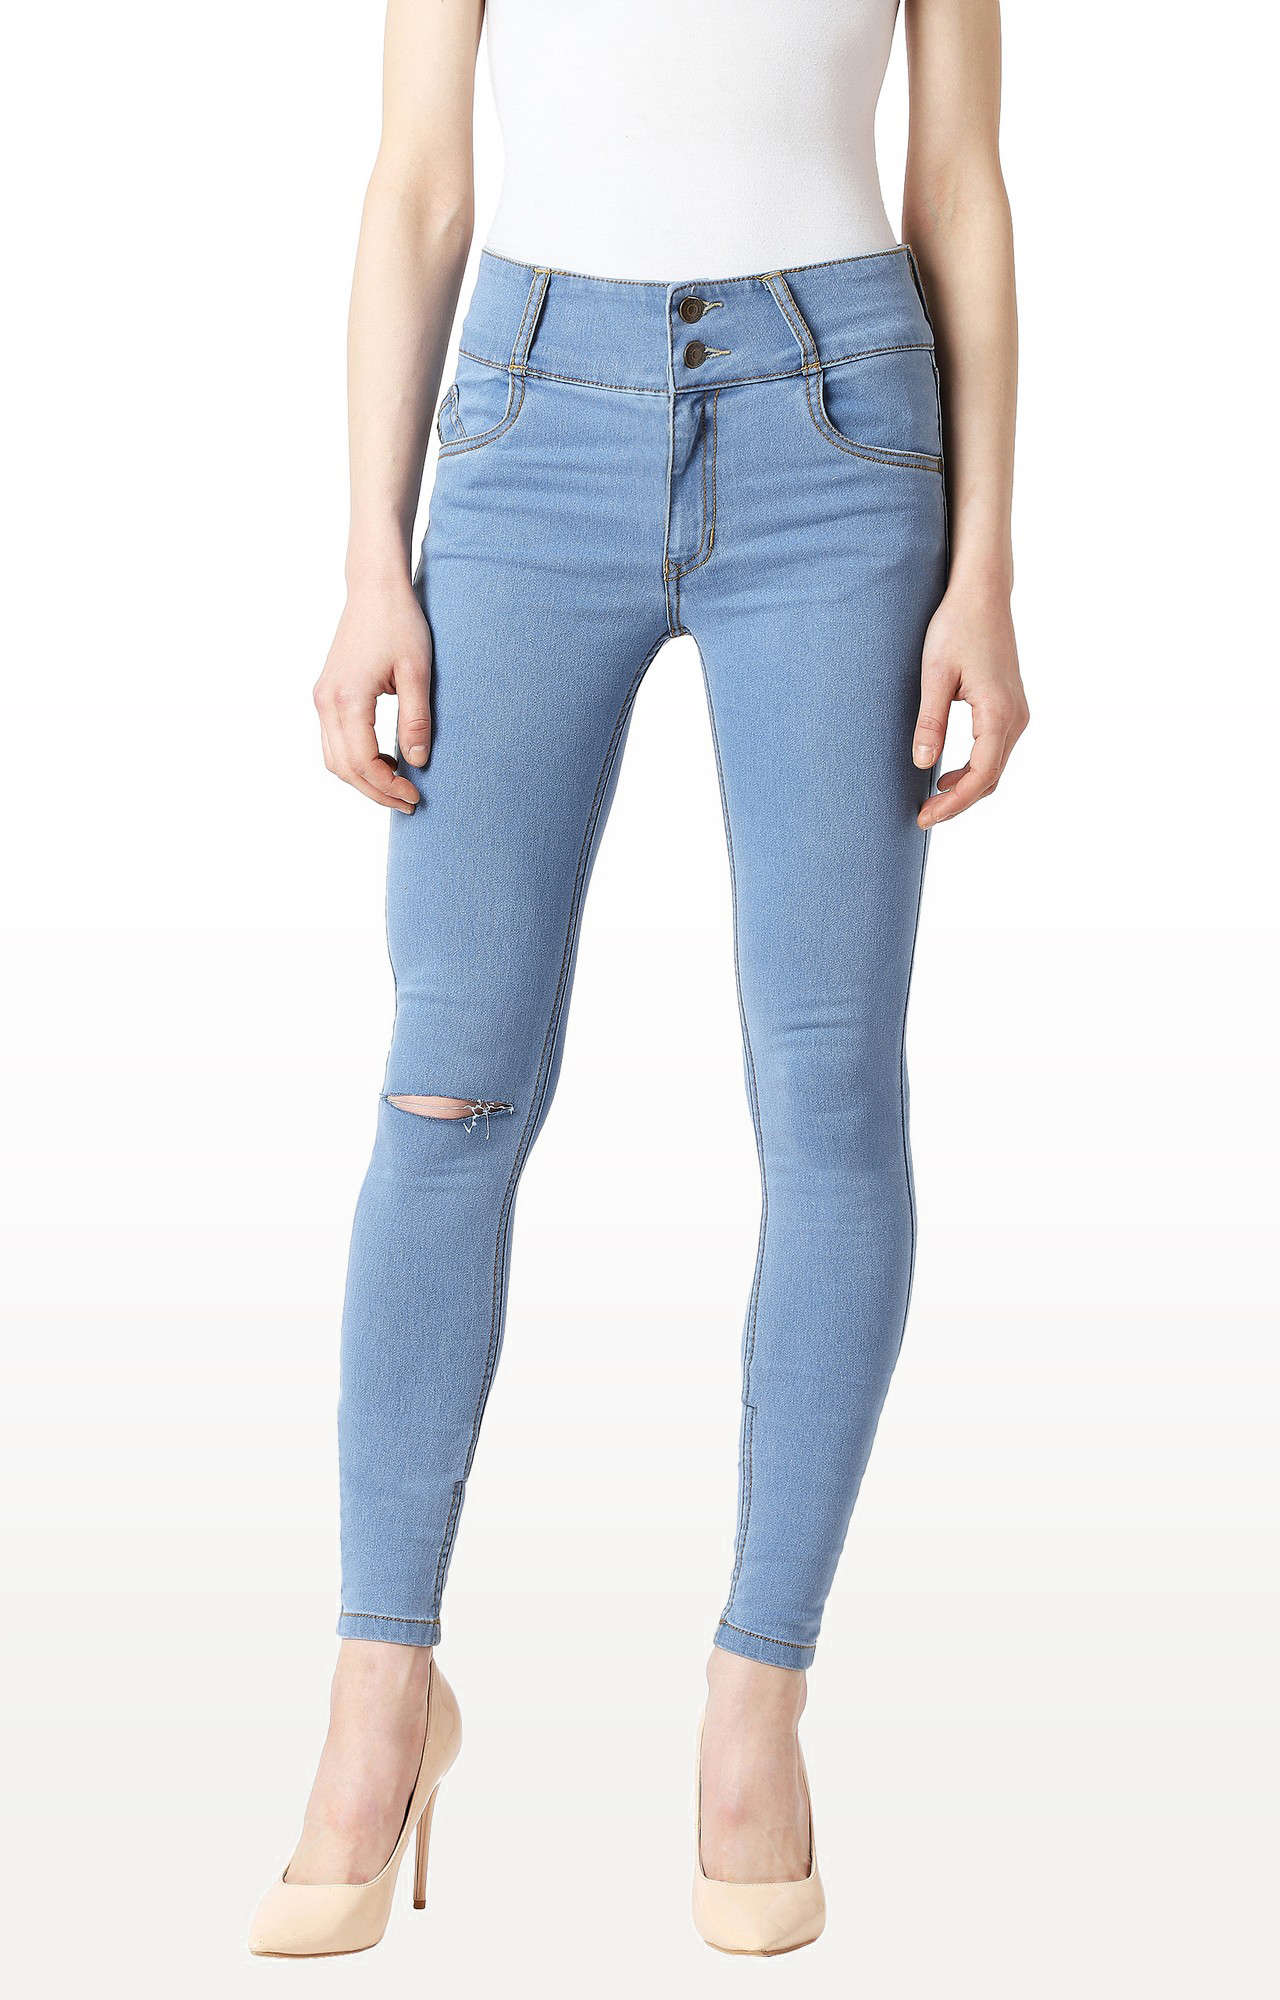 MISS CHASE | Blue Solid High Rise Clean Look Knee Slit Broad Waistband Jeans